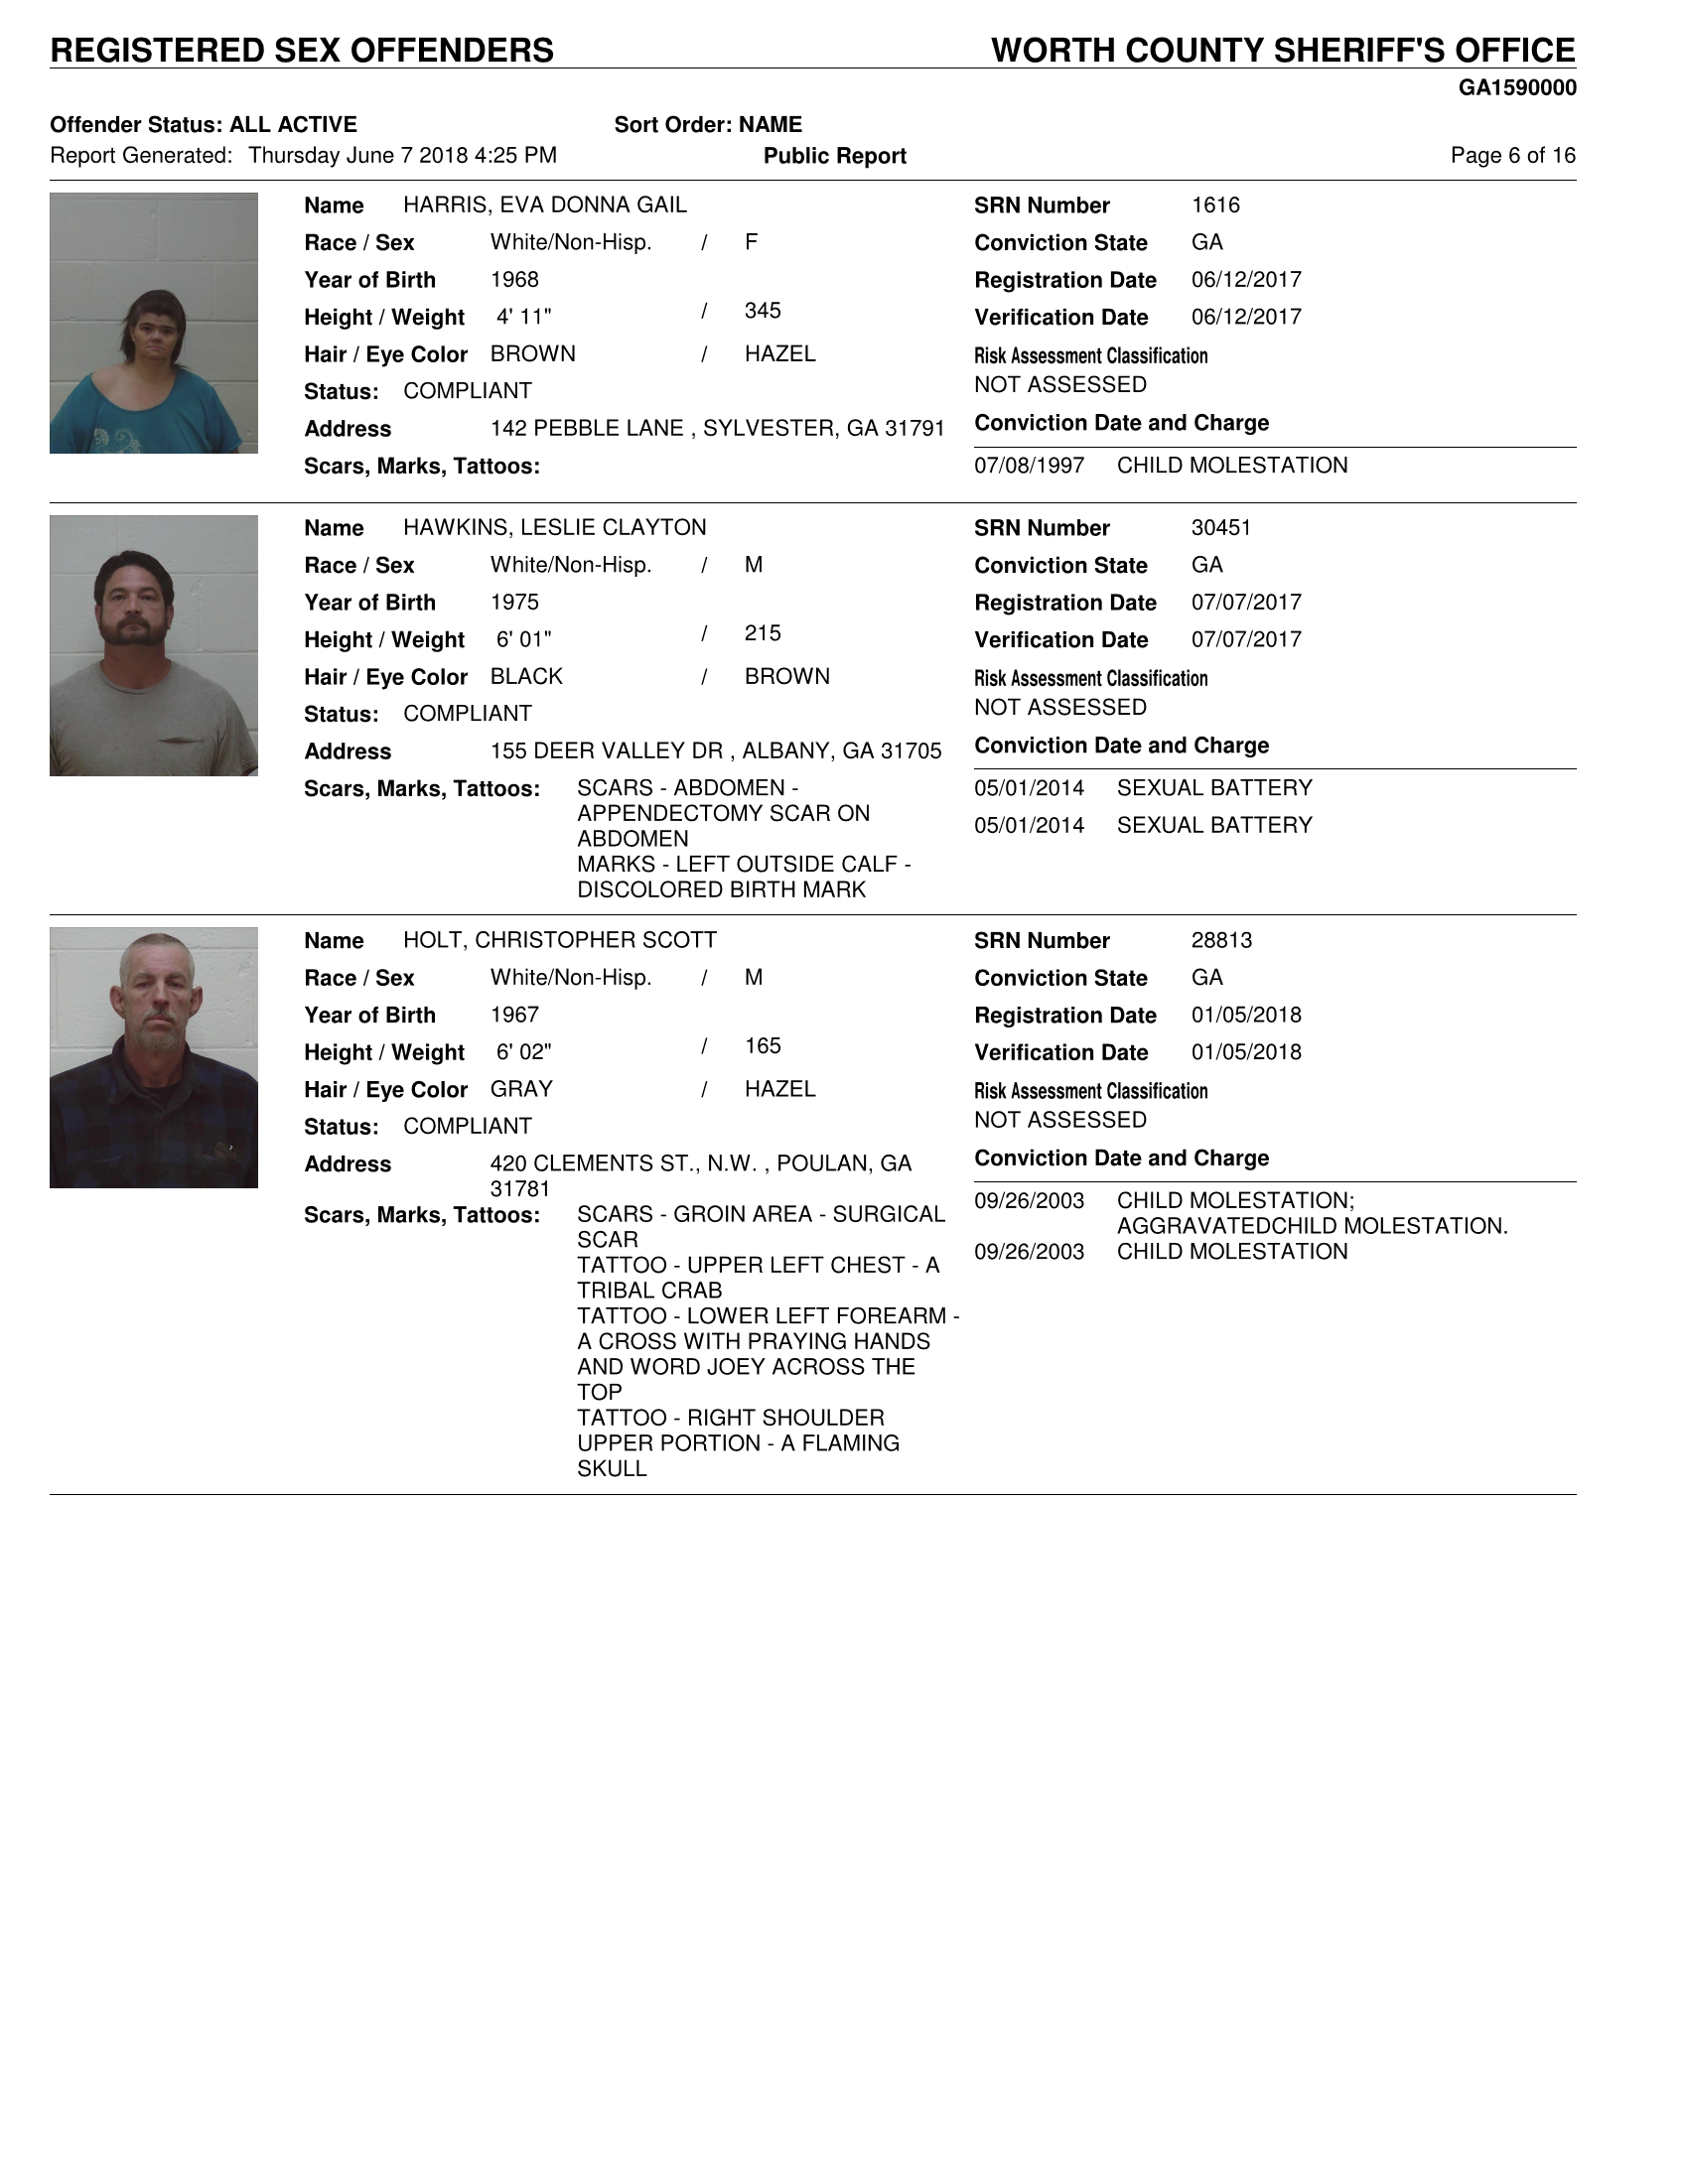 King country registered sex offender list